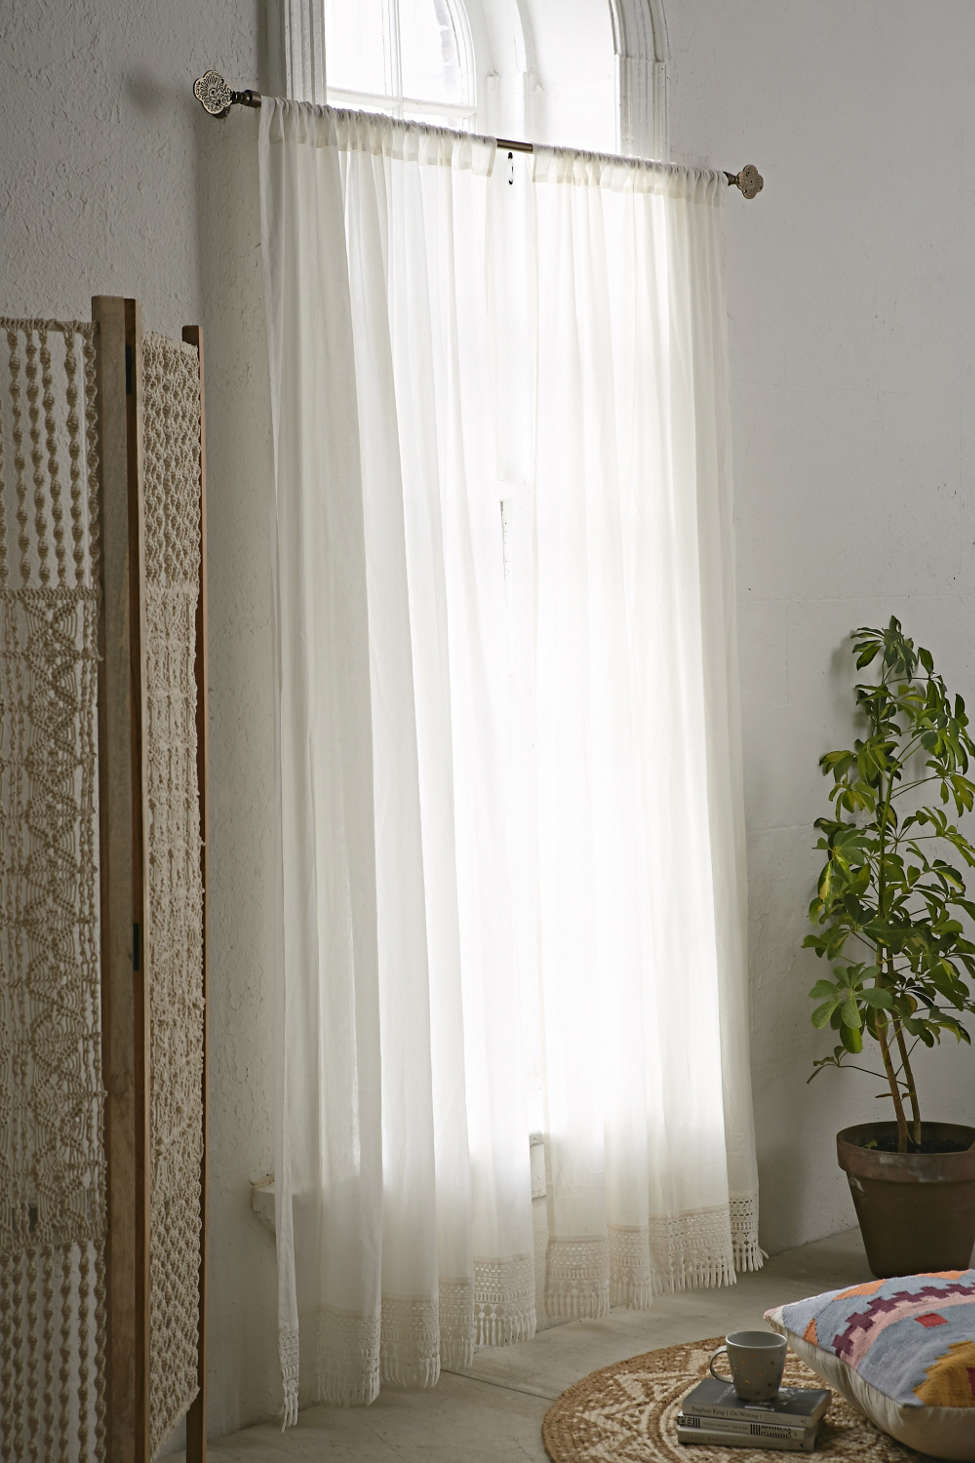 Slide View: 1: Crochet Trim Curtain